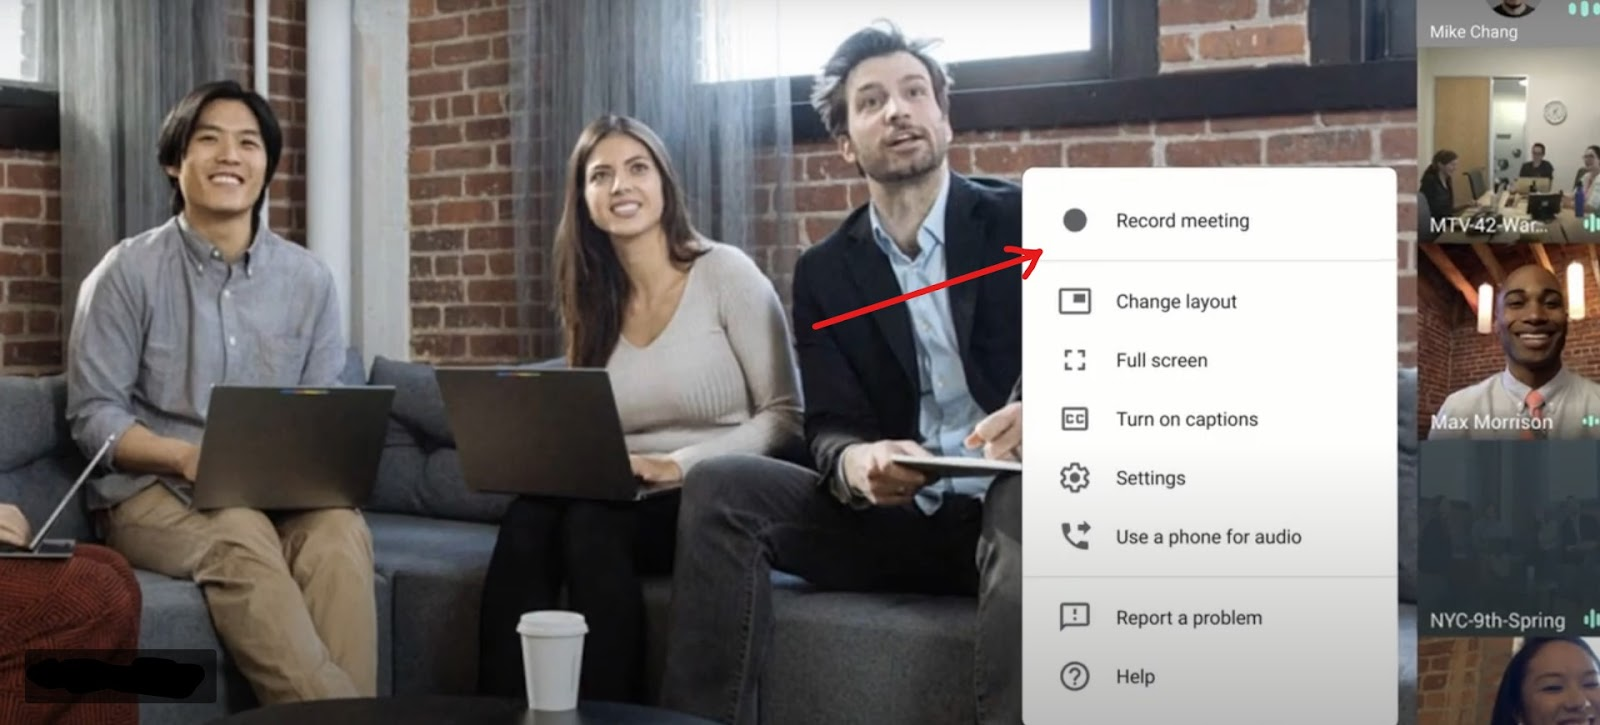 Google Meet Tips and Tricks: Record Meetings using google meet options found in the settings